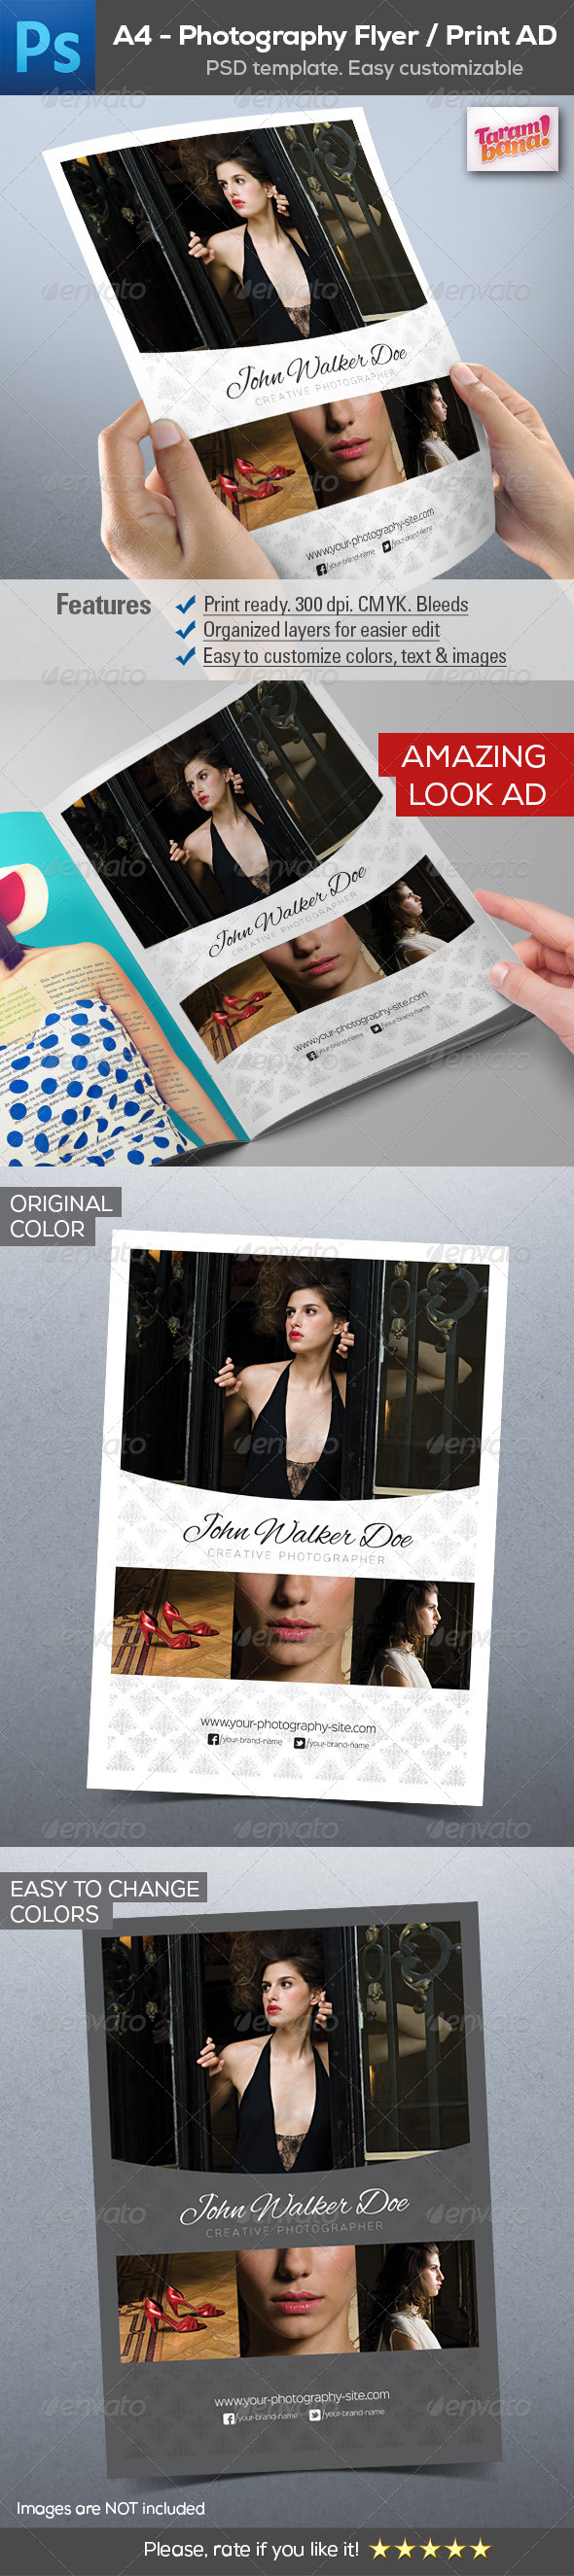 GraphicRiver A4 Photography Flyer AD layout 8296184